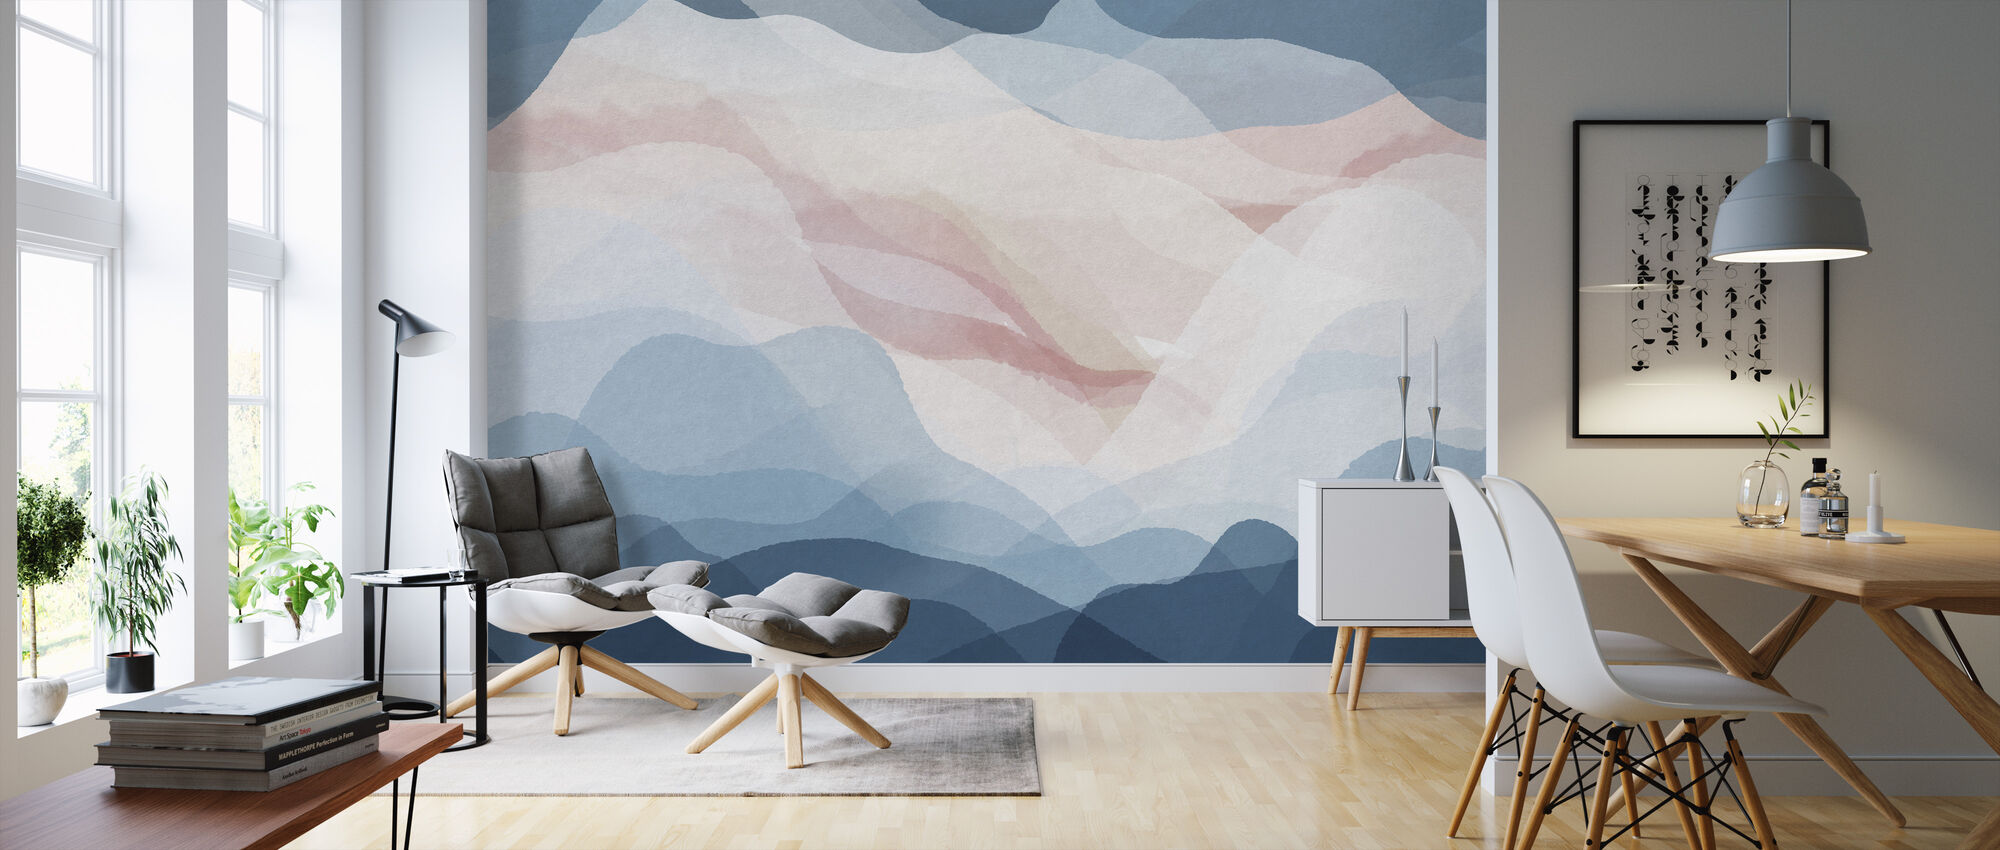 Gradient - Bluish - Wallpaper - Living Room